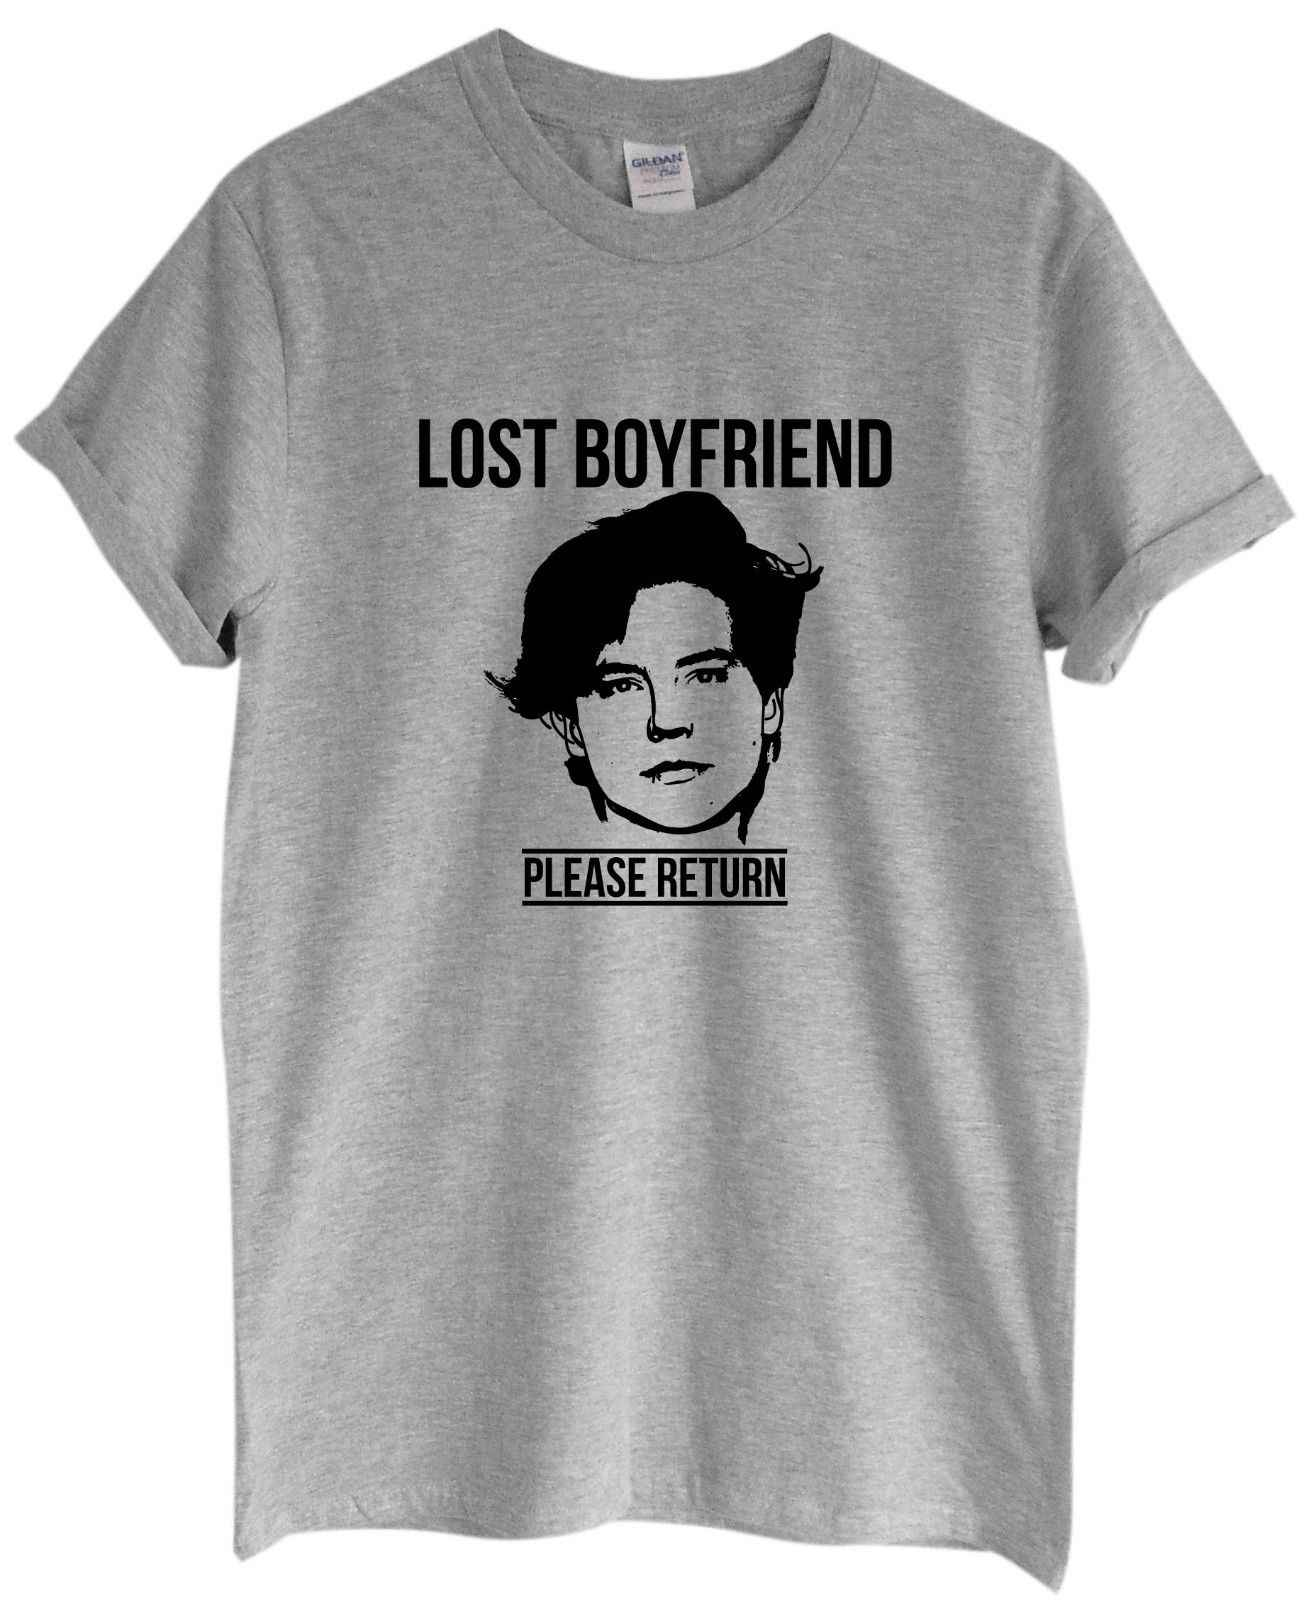 Lost Boyfriend Please Return Unisex T-Shirt | Cole Bughead Sprouse Kj Grunge ApaCartoon t shirt men Unisex New Fashion tshirt